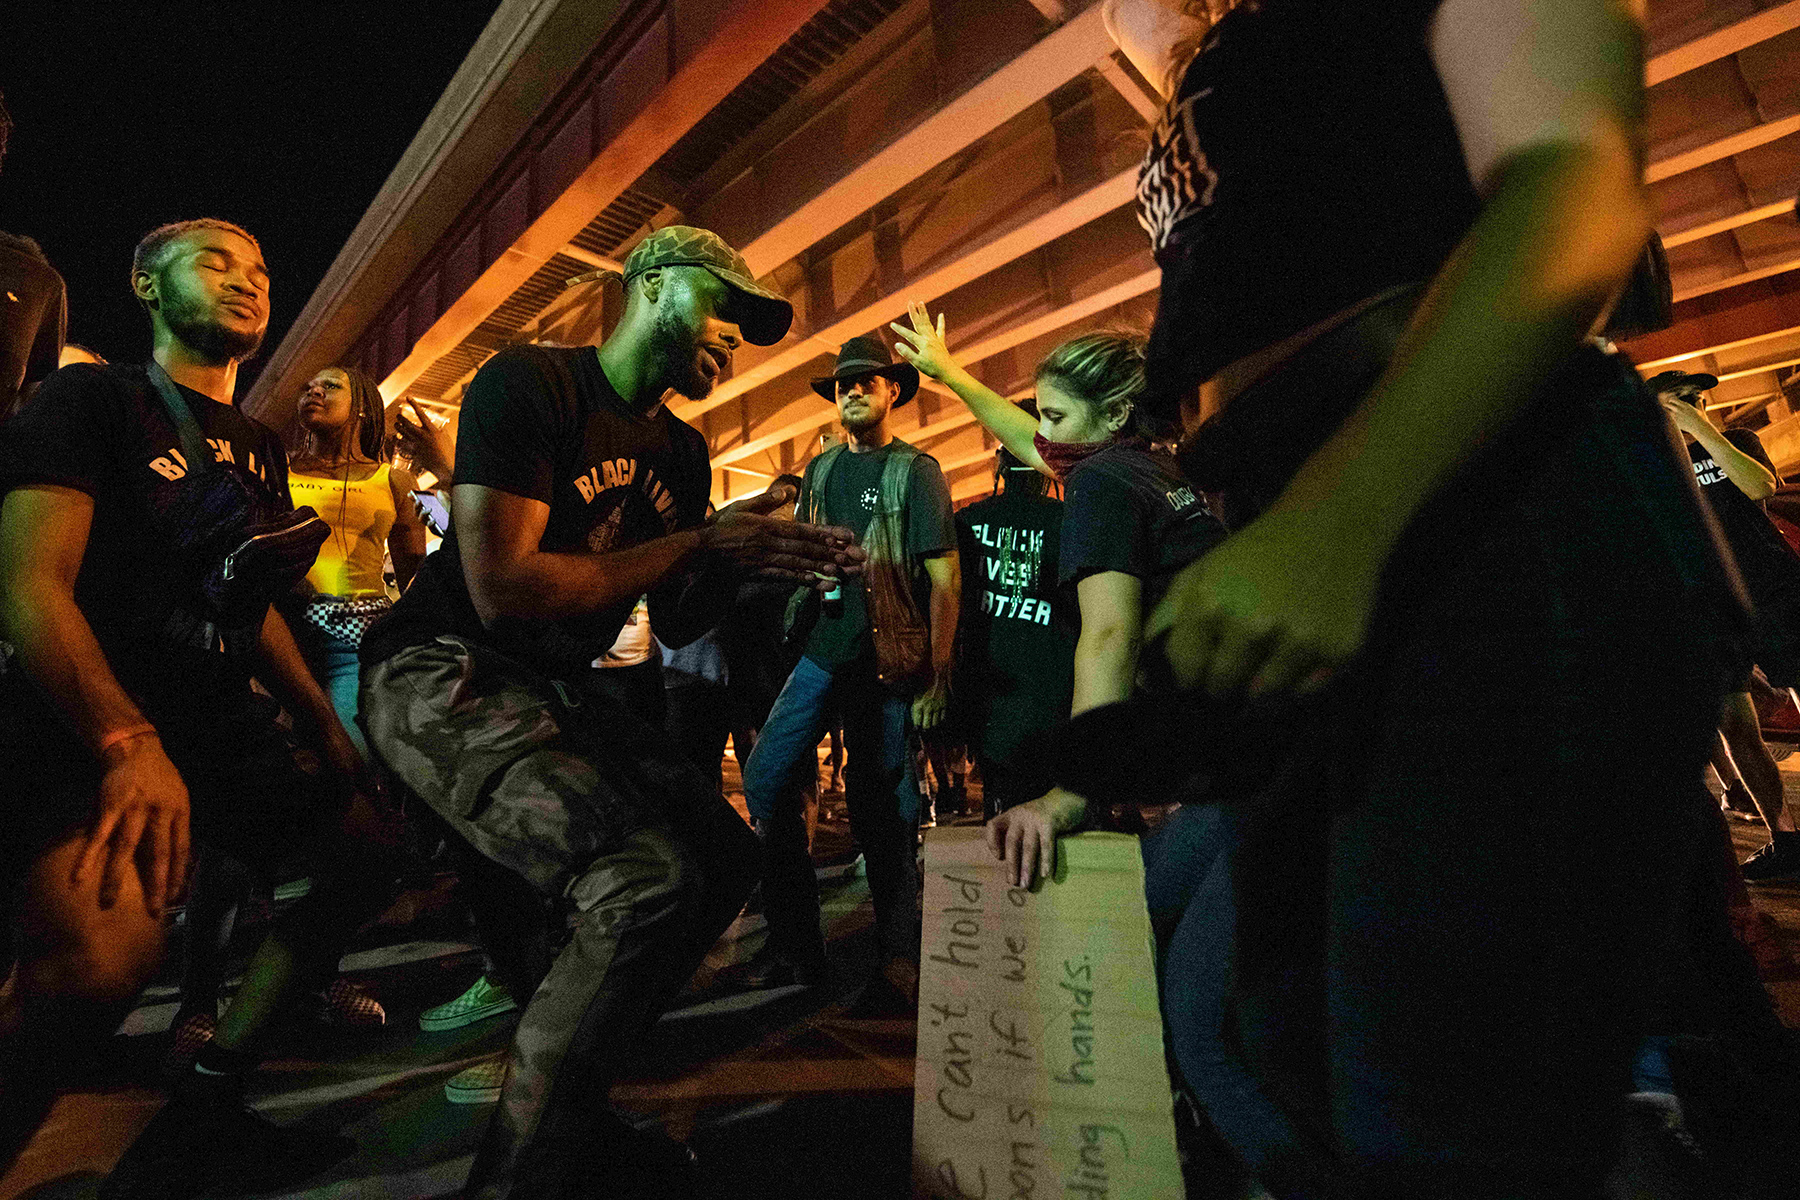 June 20, 2020, Tulsa, Oklahoma, USA: After President Trumps Rally in Tulsa a large group of protesters assembled just steps away from the BOK Center. The peaceful demonstration was met with hoards of police and a swarm of pepper bullets. As th police retreated from the raucous crowd the protesters decided to move back to the Greenwood District, and Black Wall Street, the site of the 1921 race massacre in Tulsa. Upon arriving back in Greenwood the protesters were met by a DJ that happened to be playing on Black Wall Street. The large crowd of demonstrators, made of many different races and backgrounds celebrated one anothers differences and danced into the early morning hours. They spoke of how Trumps rally was divisive and exclusive, but their rally in Greenwood was all inclusive and how they would defeat hate with love. The beautifully organic moment where time seemingly stood still for the protesters was filled with love, and celebration for they felt that they were winning this battle by not engaging in hate. (Credit Image: © Tyler Tomasello/ZUMA Wire)